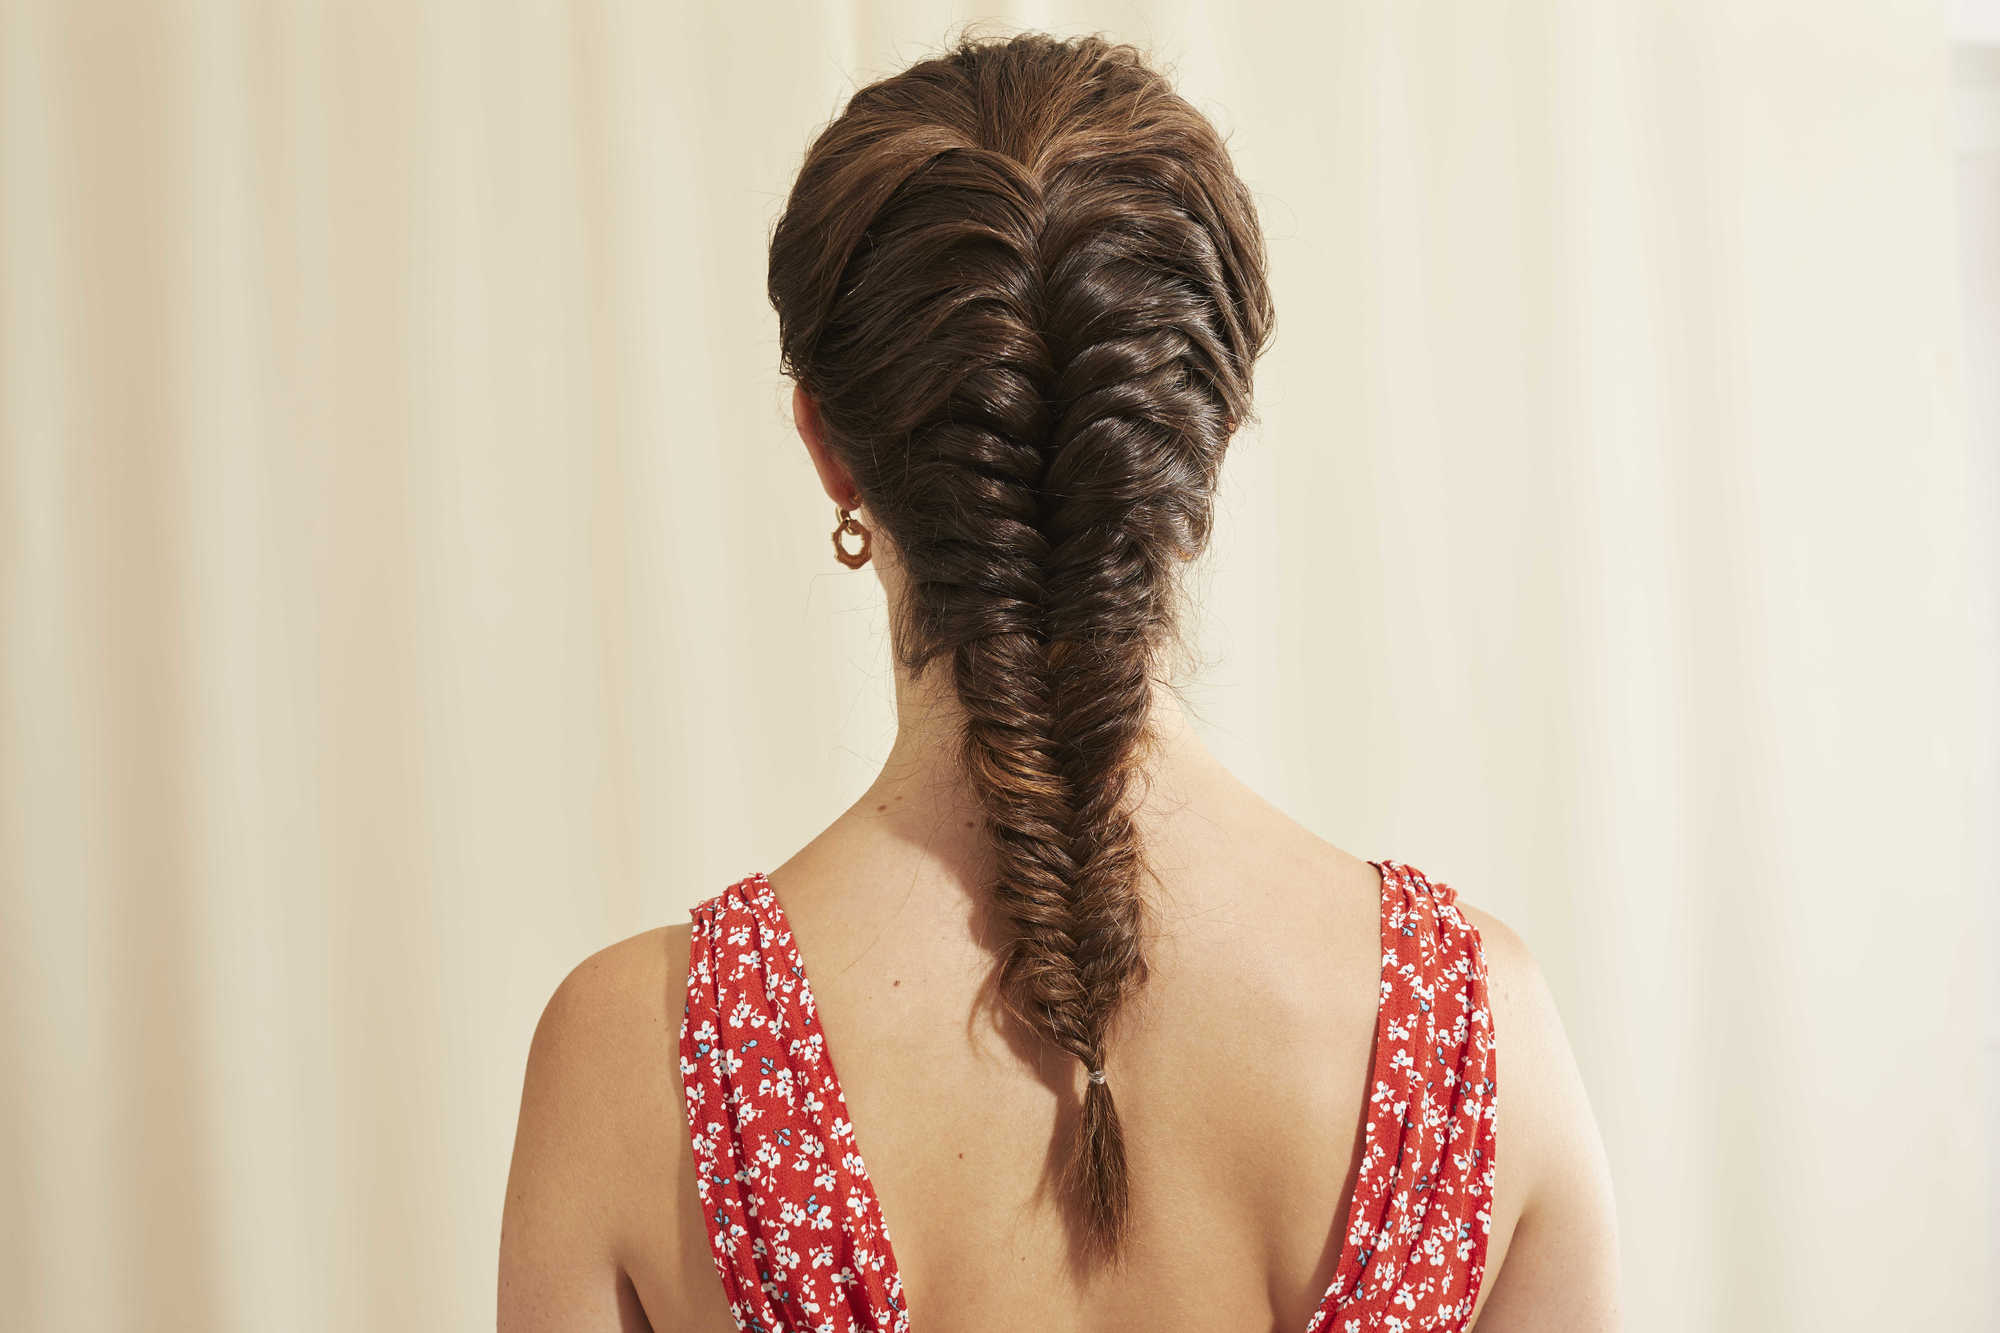 Woman with long brown hair styled into a fishtail braid